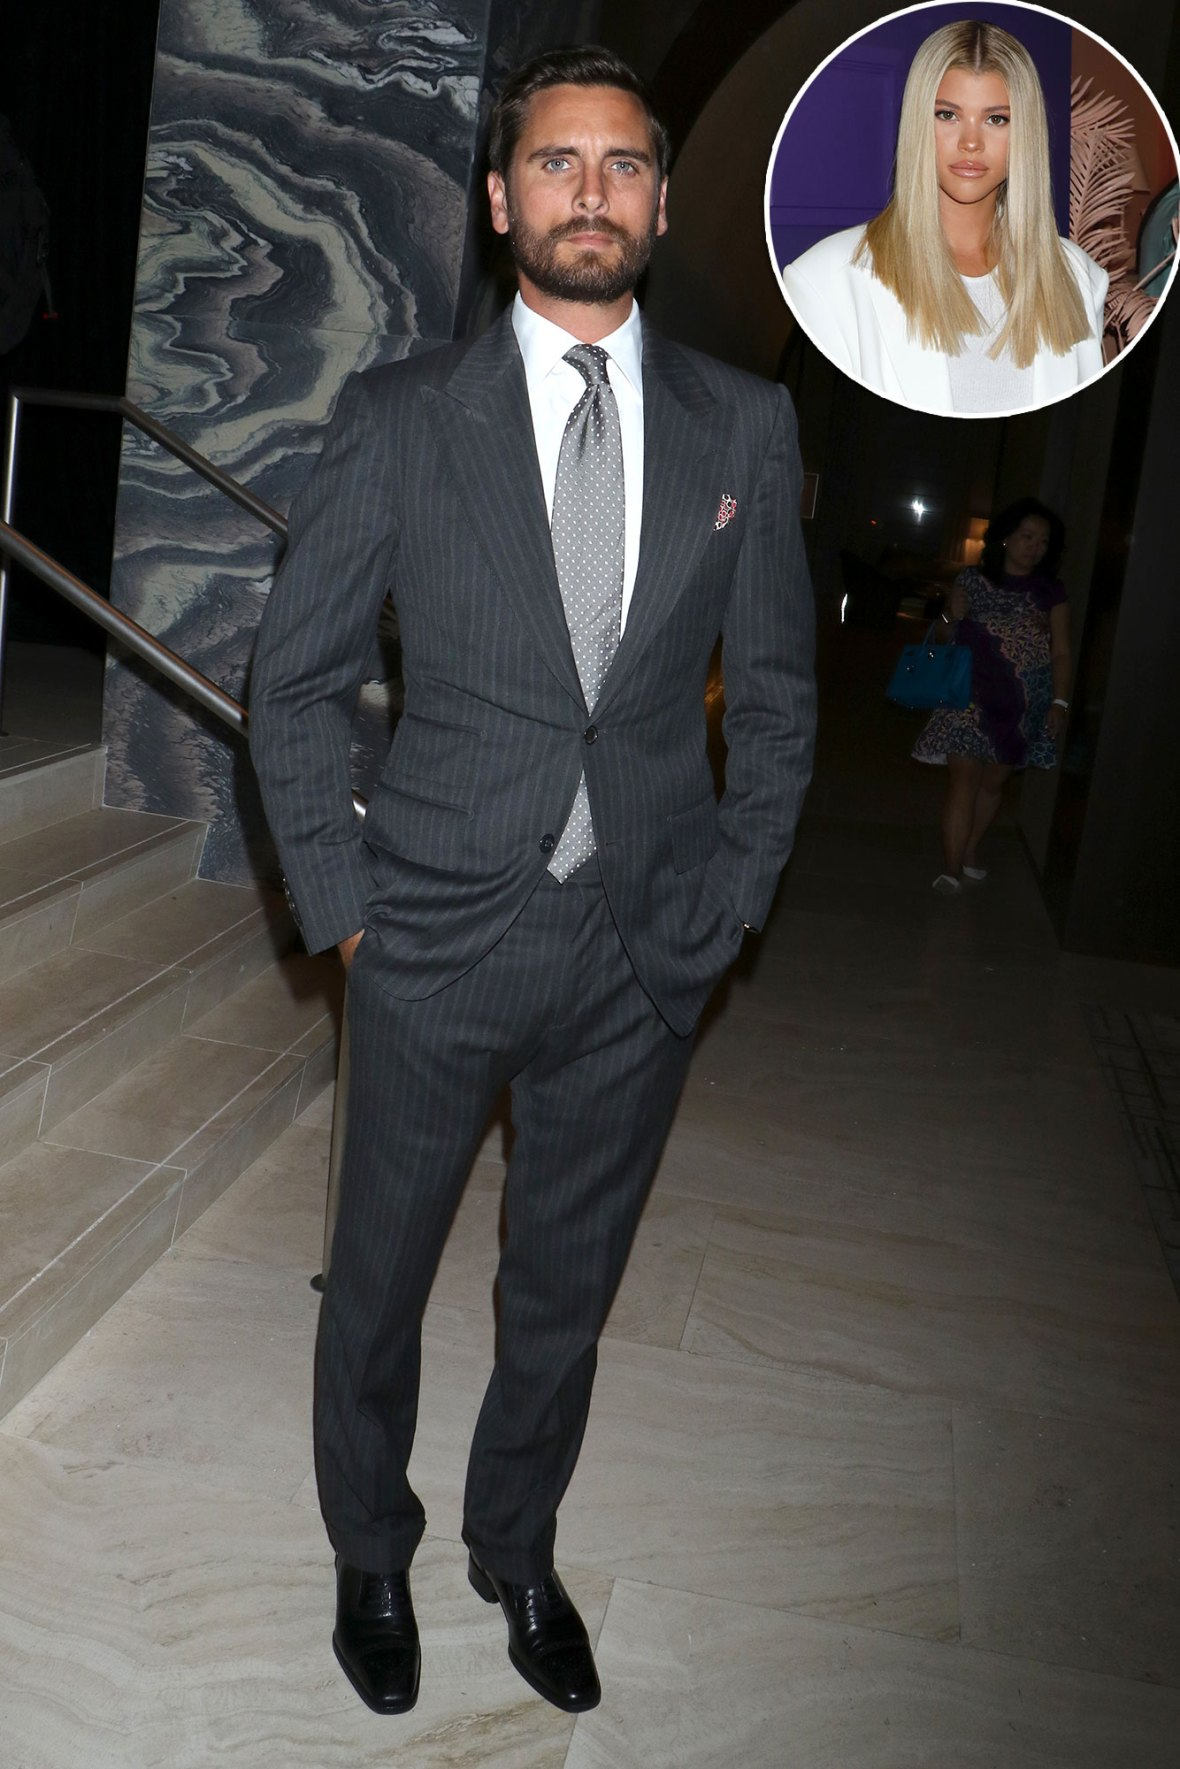 Scott Disick Enjoys Date Night With Blonde Model After Sofia Richie Breakup